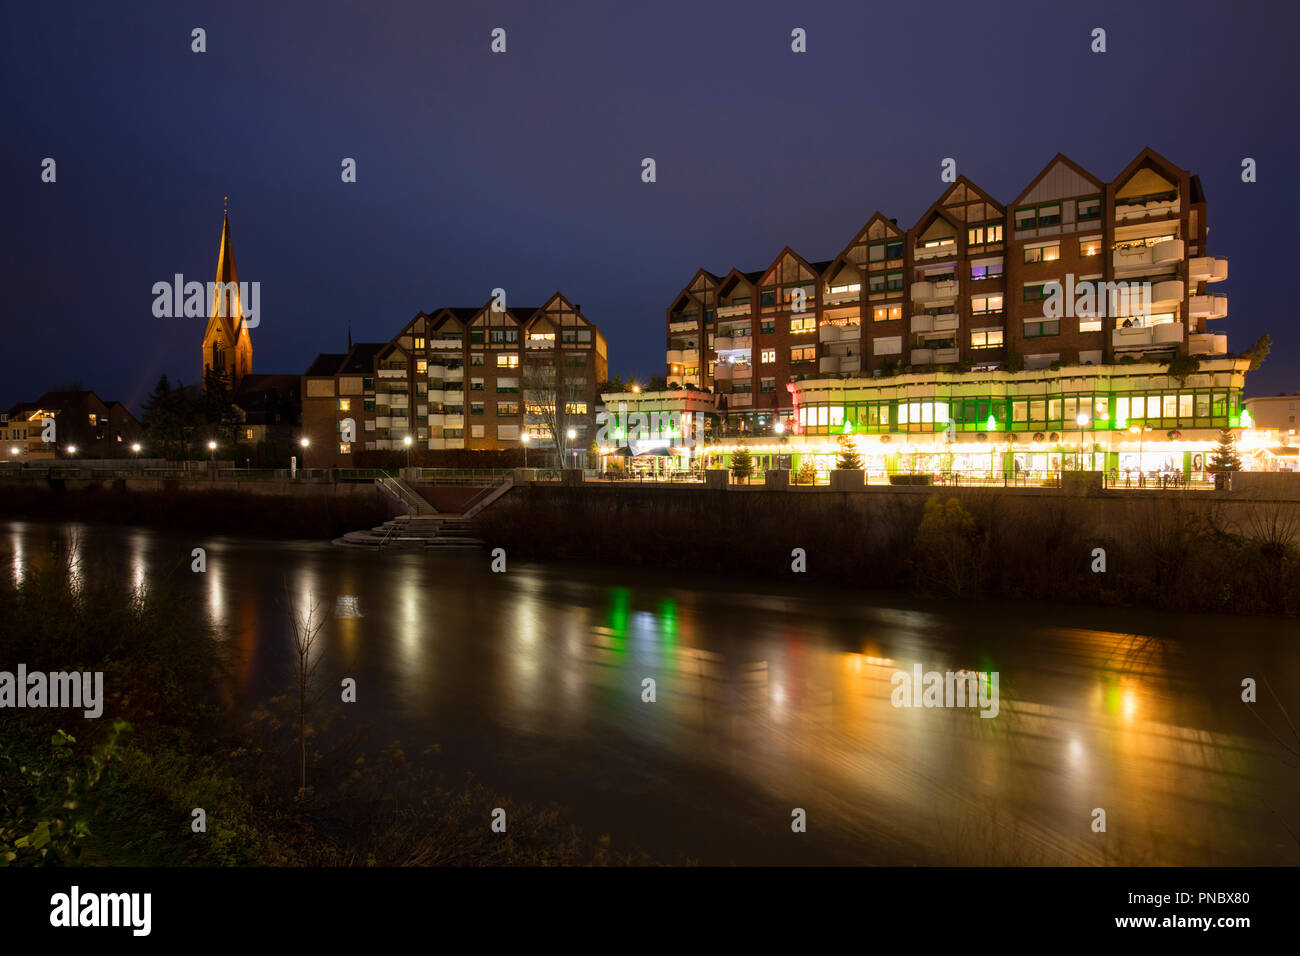 Town view, Lünen, Ruhr district, North Rhine-Westphalia, Germany, Europe - Stock Image